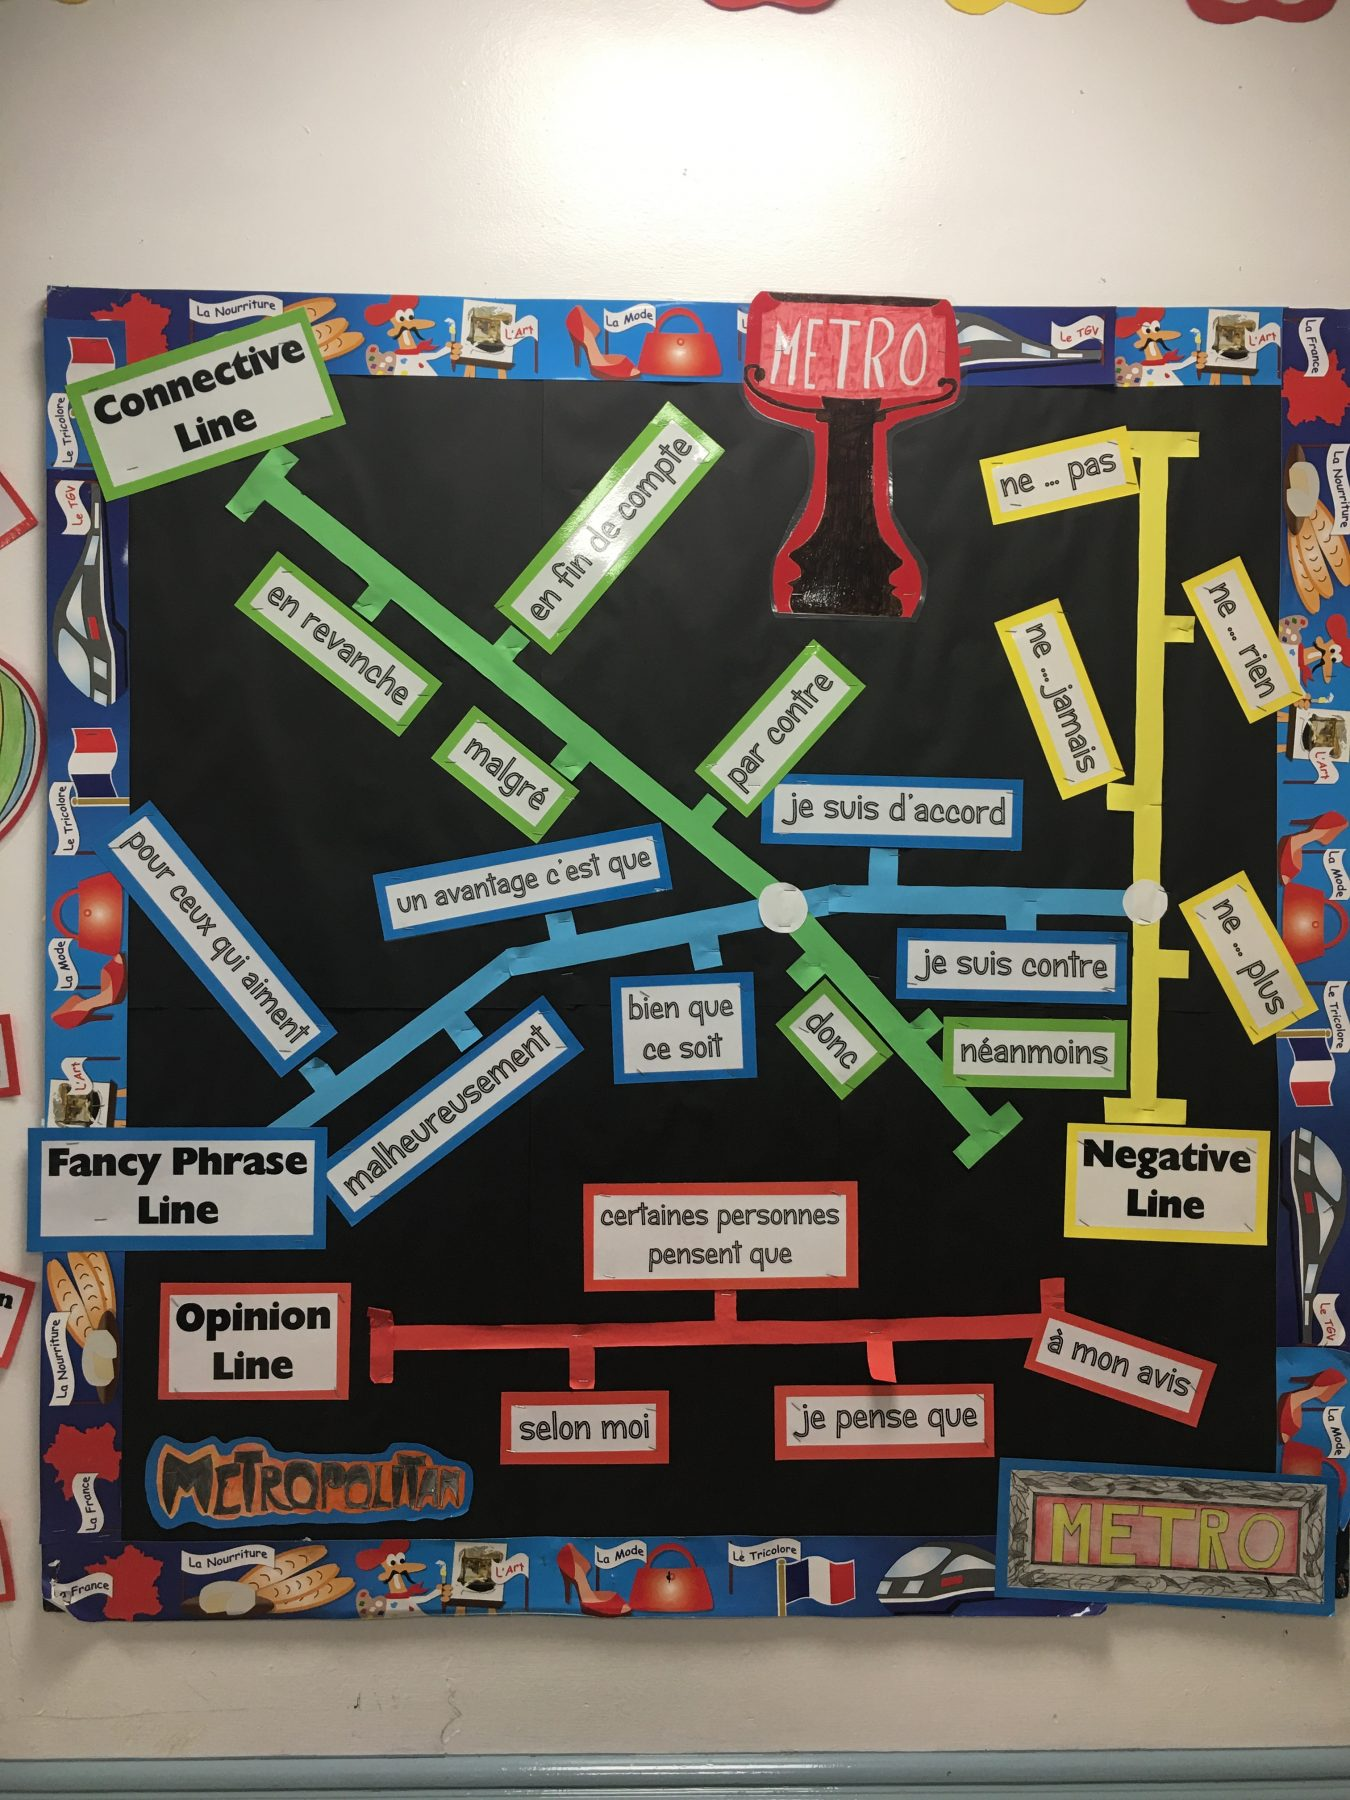 Creating engaging displays